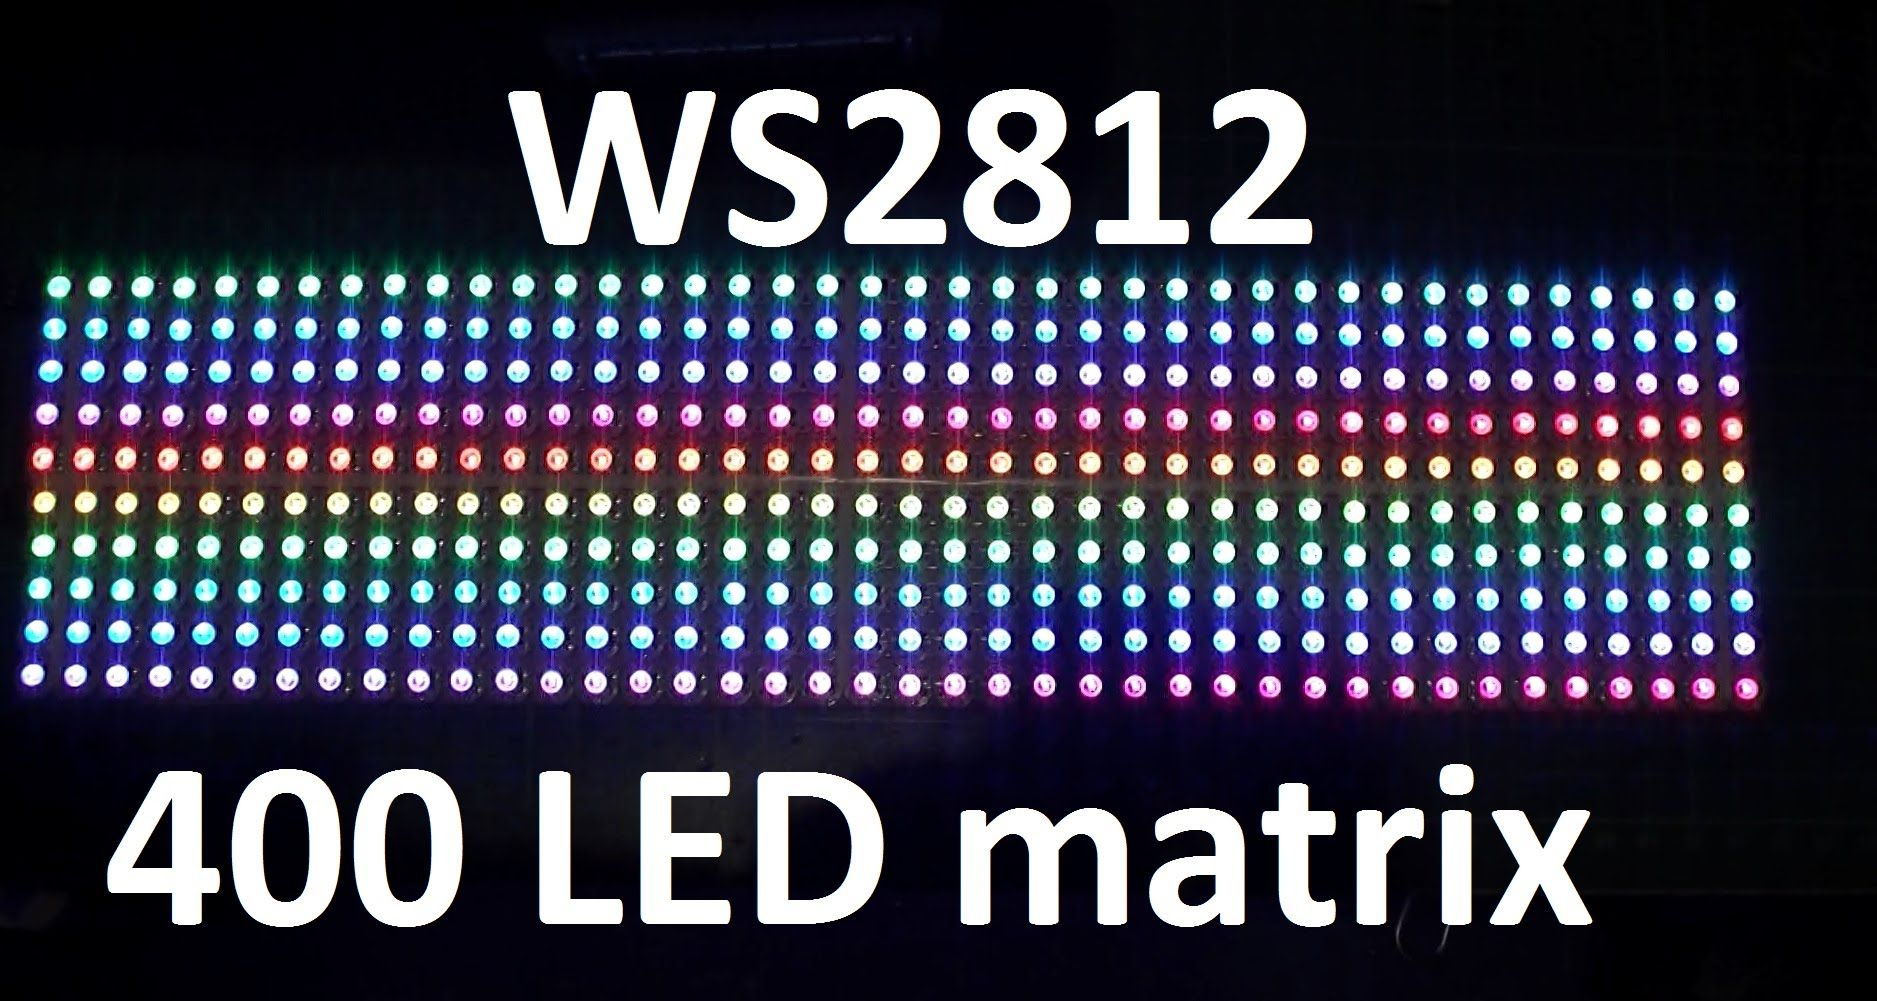 Arduino & 400 Neopixel WS2812 RGB LED matrix project | Jercio LED in